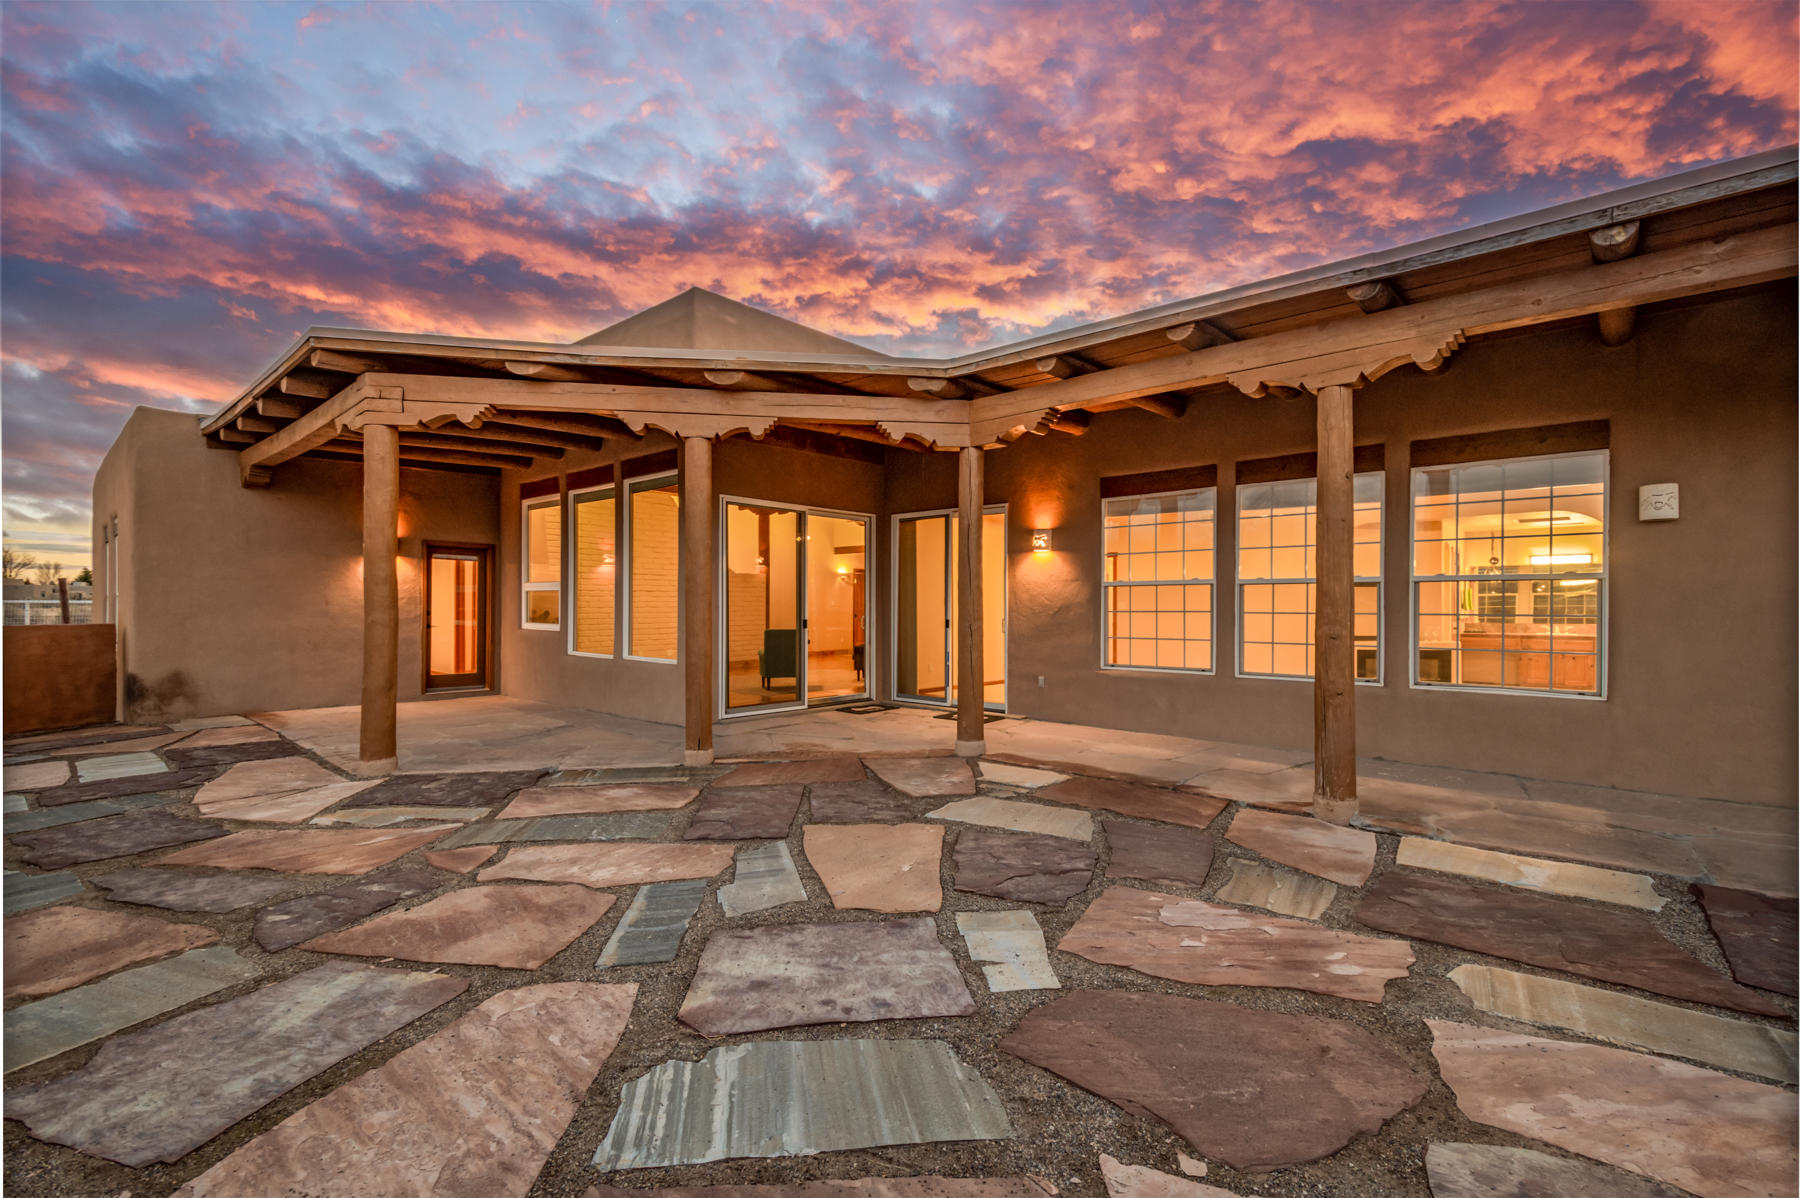 This RARE 7 acre horse training facility, conveniently located NW of Alb,& 45 minutes from Santa Fe, in Corrales, features fully equipped 11-stall show barn w/ studio, heating/cooling, W/D hook ups.10 half covered outdoor pens,7-stall foaling barn/shop, 80 x150 covered arena, turnout, 60 round pen,4 loafing shed, approx 3 1/2 acres  irrigated pasture! w/ MRGCD. This southwest custom home offers, beautiful tile floors, high ceilings w/ vigas, kiva fireplace, windows that frame the mountains! Cook's kitchen, island,custom cabinetry, stainless steel appliances,open dining great for entertaining, unbelievable MBR suite. FP,views of the Sandia's.Casita w/sep courtyard entry. Excellent opportunity for investor to subdivide with 1 acre lots.Google maps use 101 Larrabee Farm Rd Corrales NM 87048